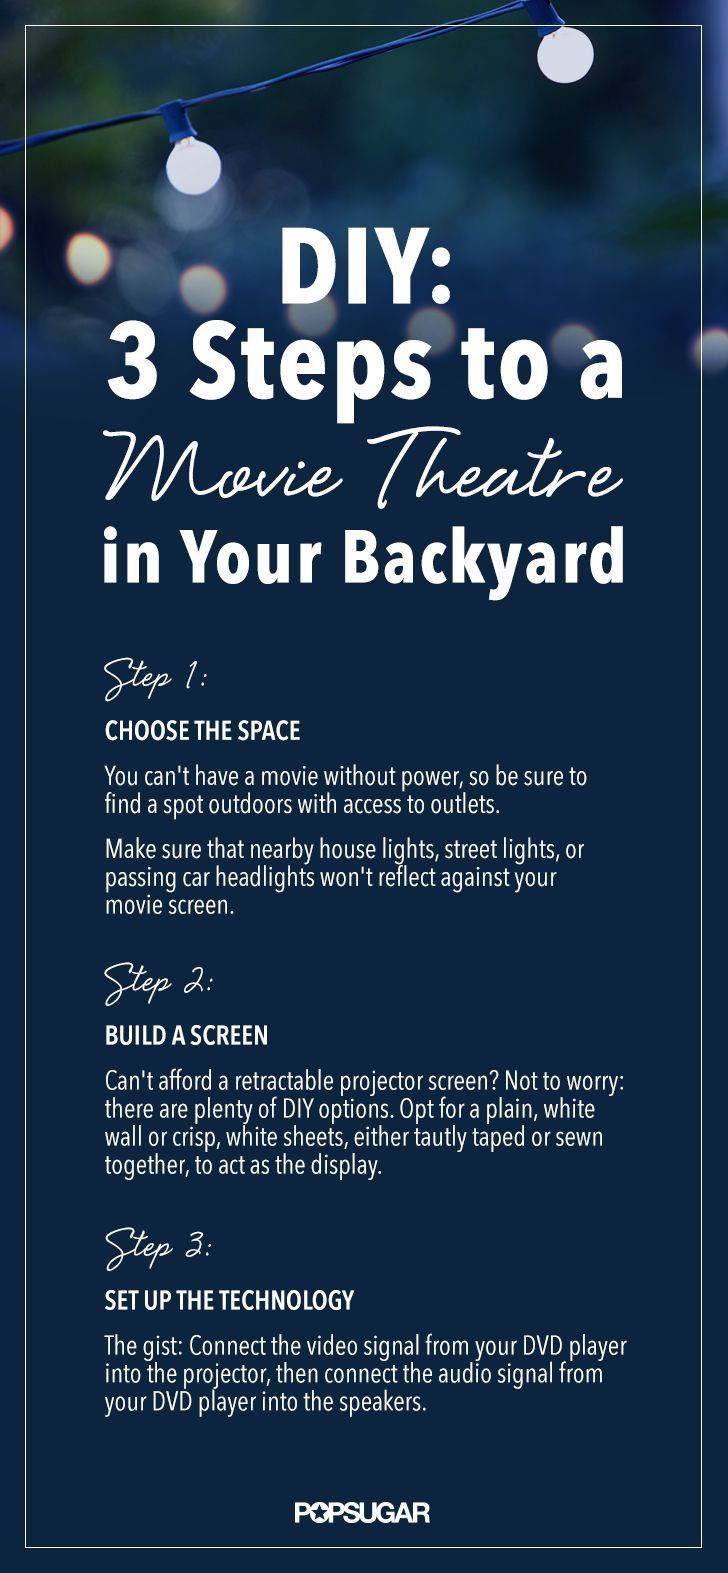 How to build a movie theatre in your backyard!